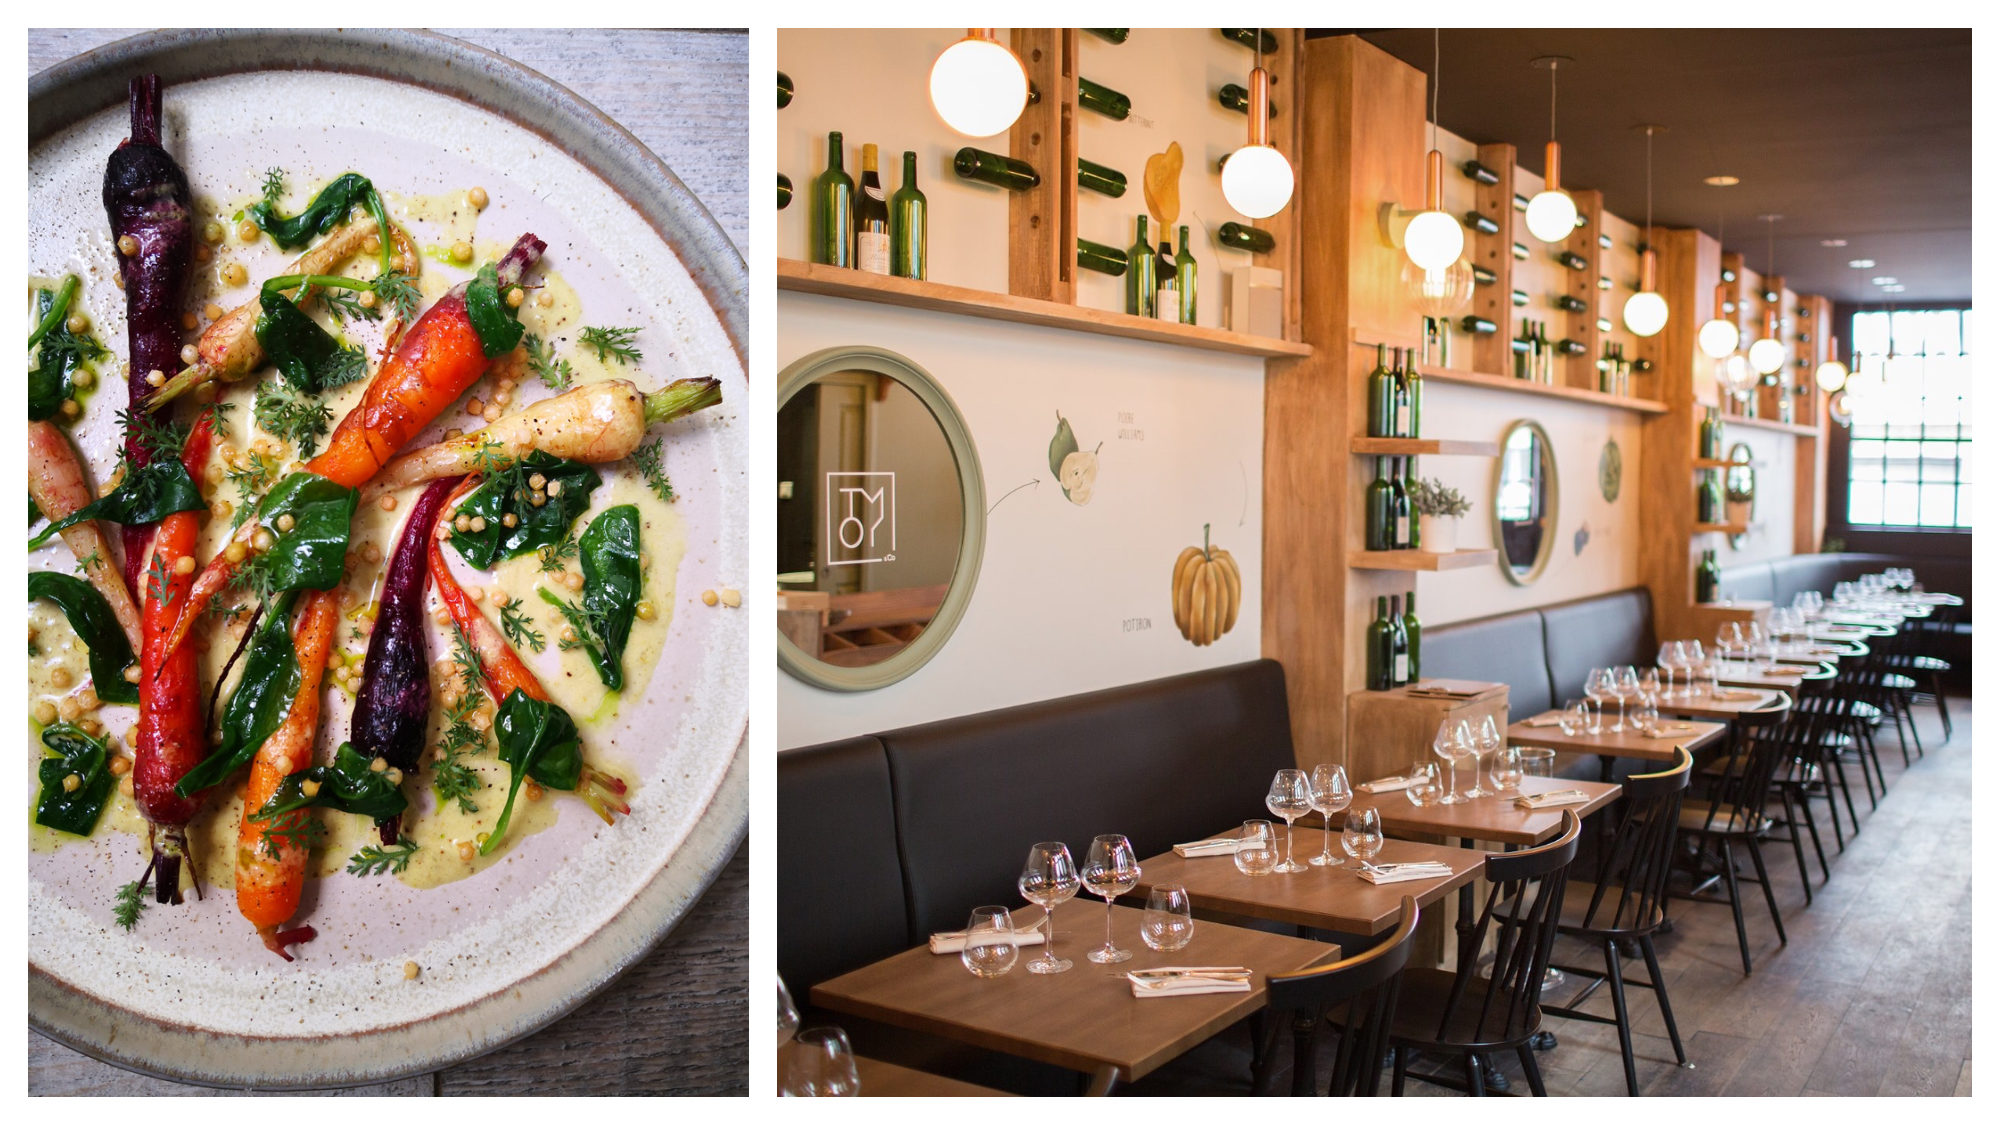 A delicious and colorful vegetable dish (left) and the warm interiors of timber tables and bistro chairs (right) at Tomy + Co restaurant in Paris.